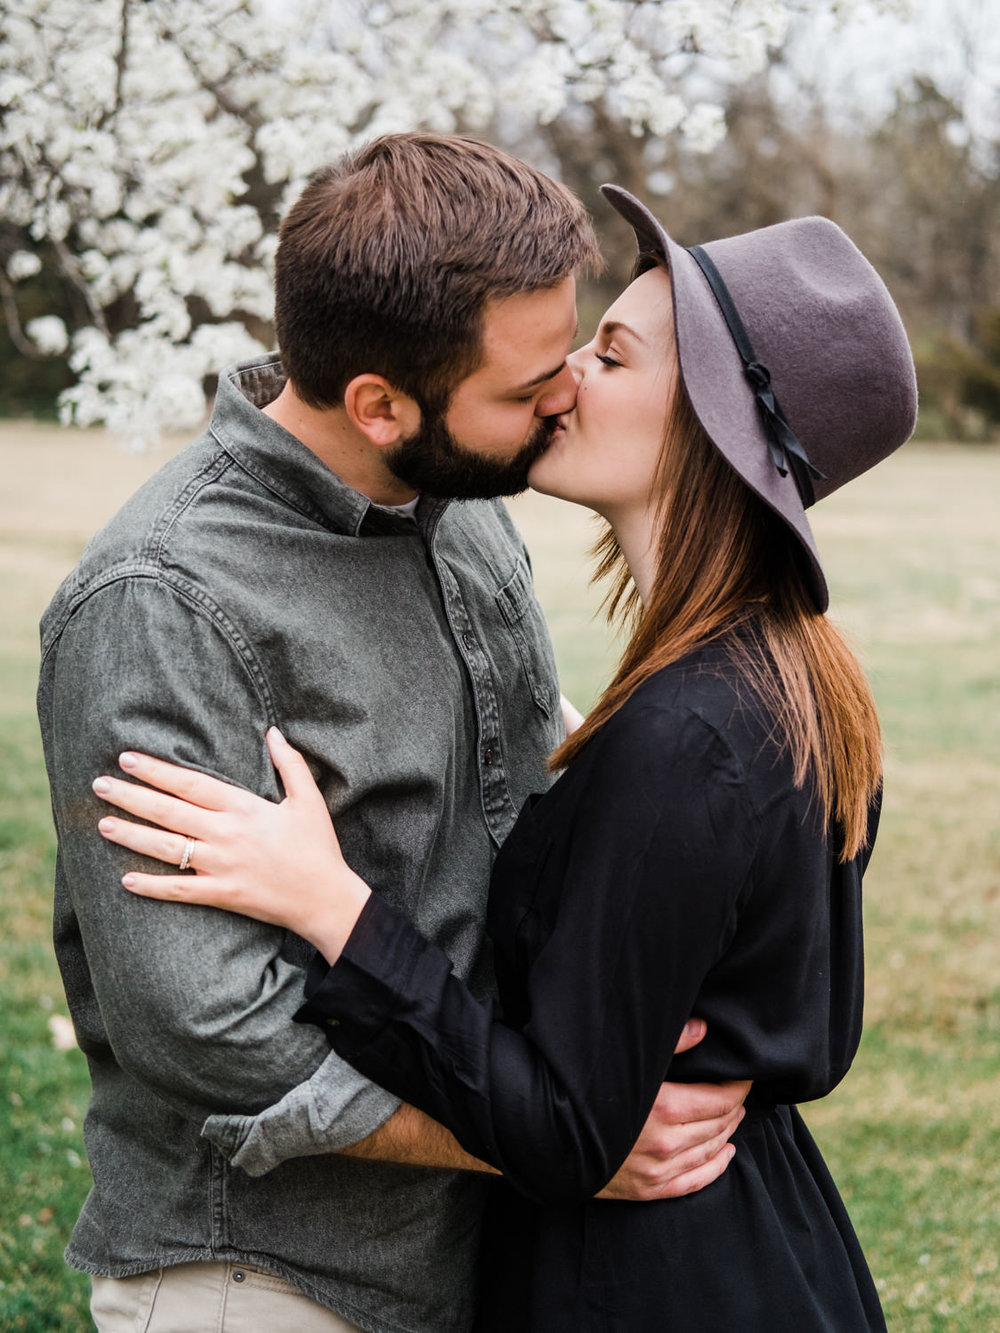 Wichita, Kansas Couples Session-In Home Session-Anniversary Session-Wichita, Kansas Portrait Photographer-Neal Dieker-183.jpg